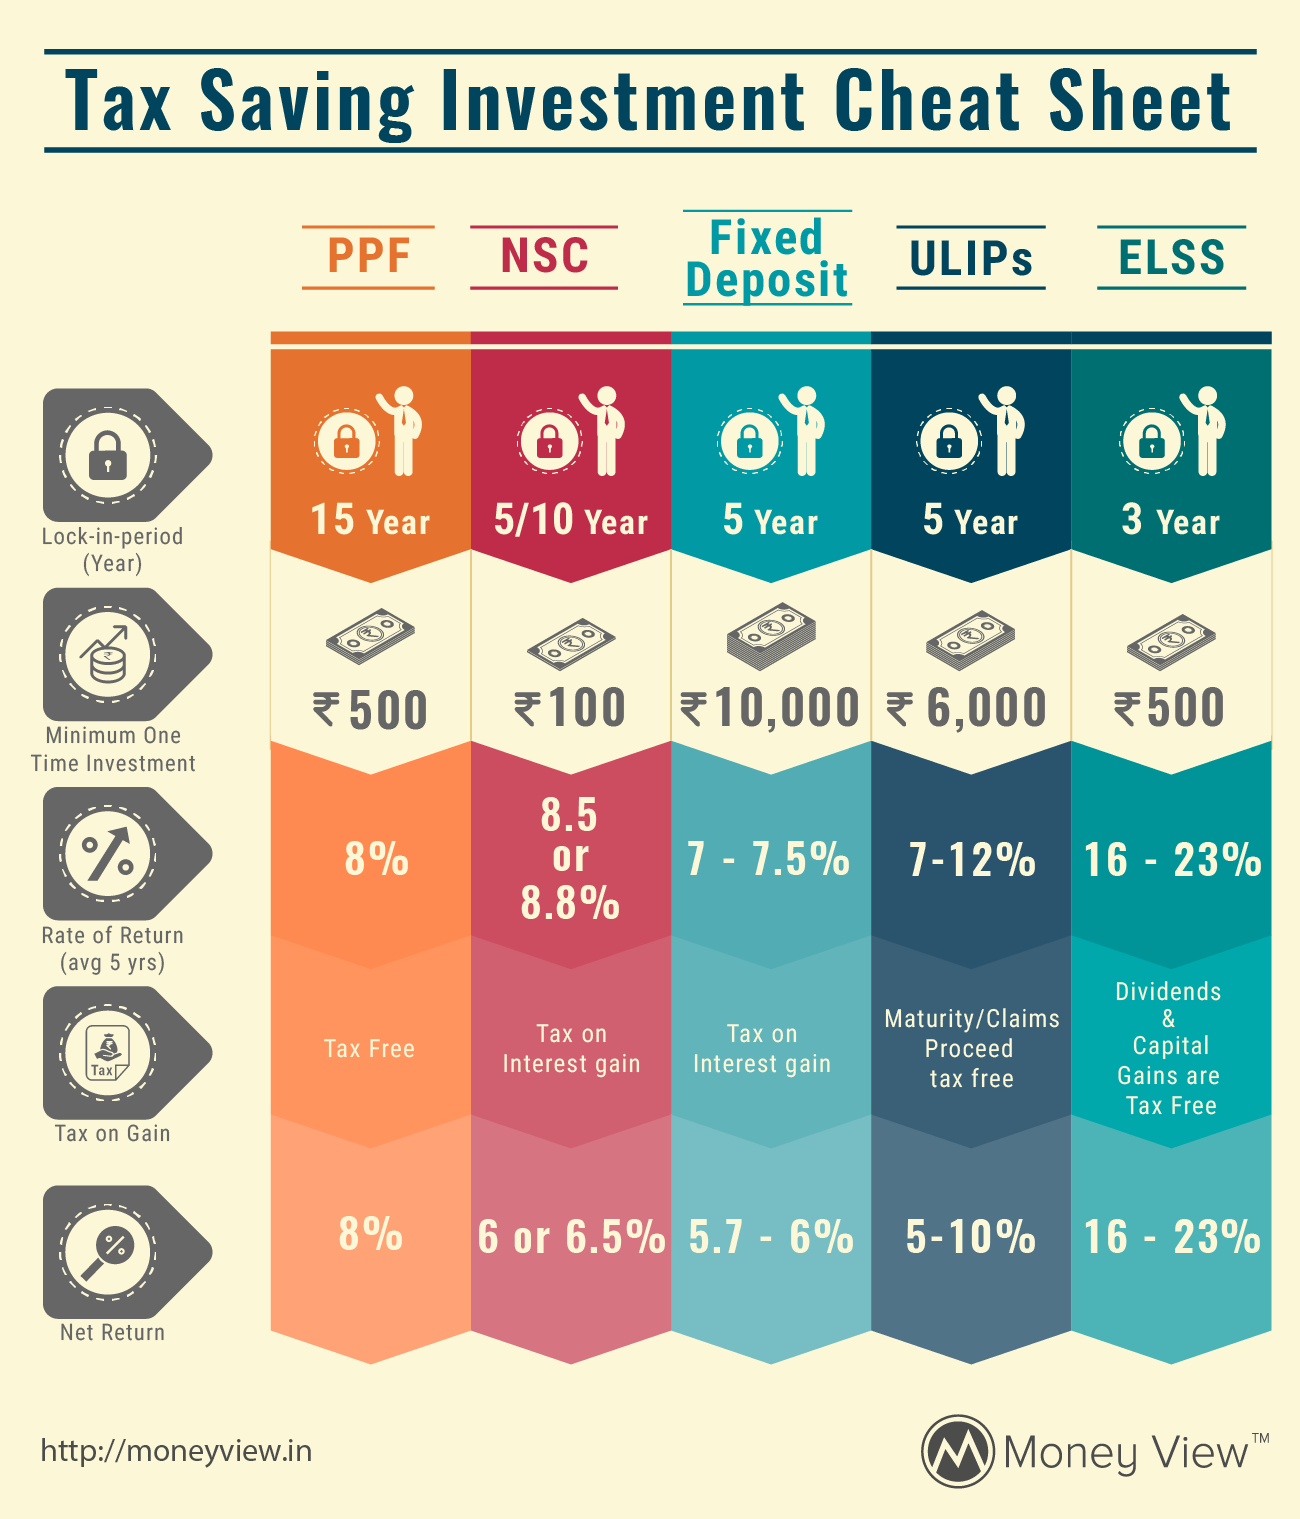 investments help you save income tax legally